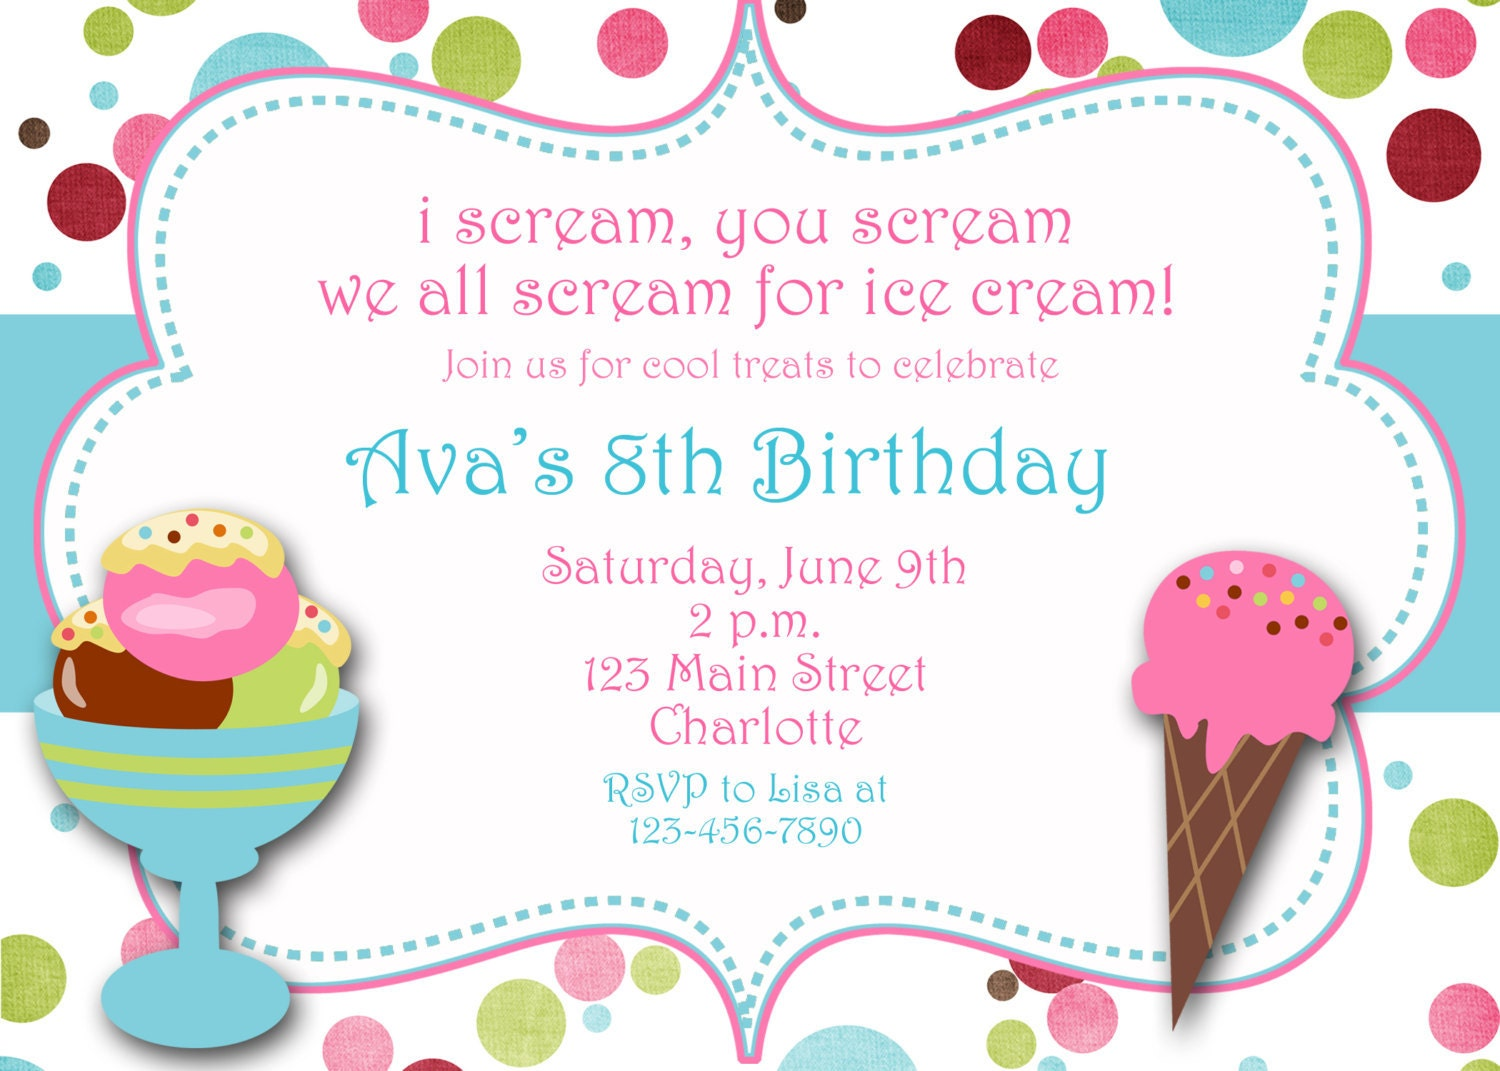 ice cream party birthday invitation ice by thebutterflypress. Black Bedroom Furniture Sets. Home Design Ideas